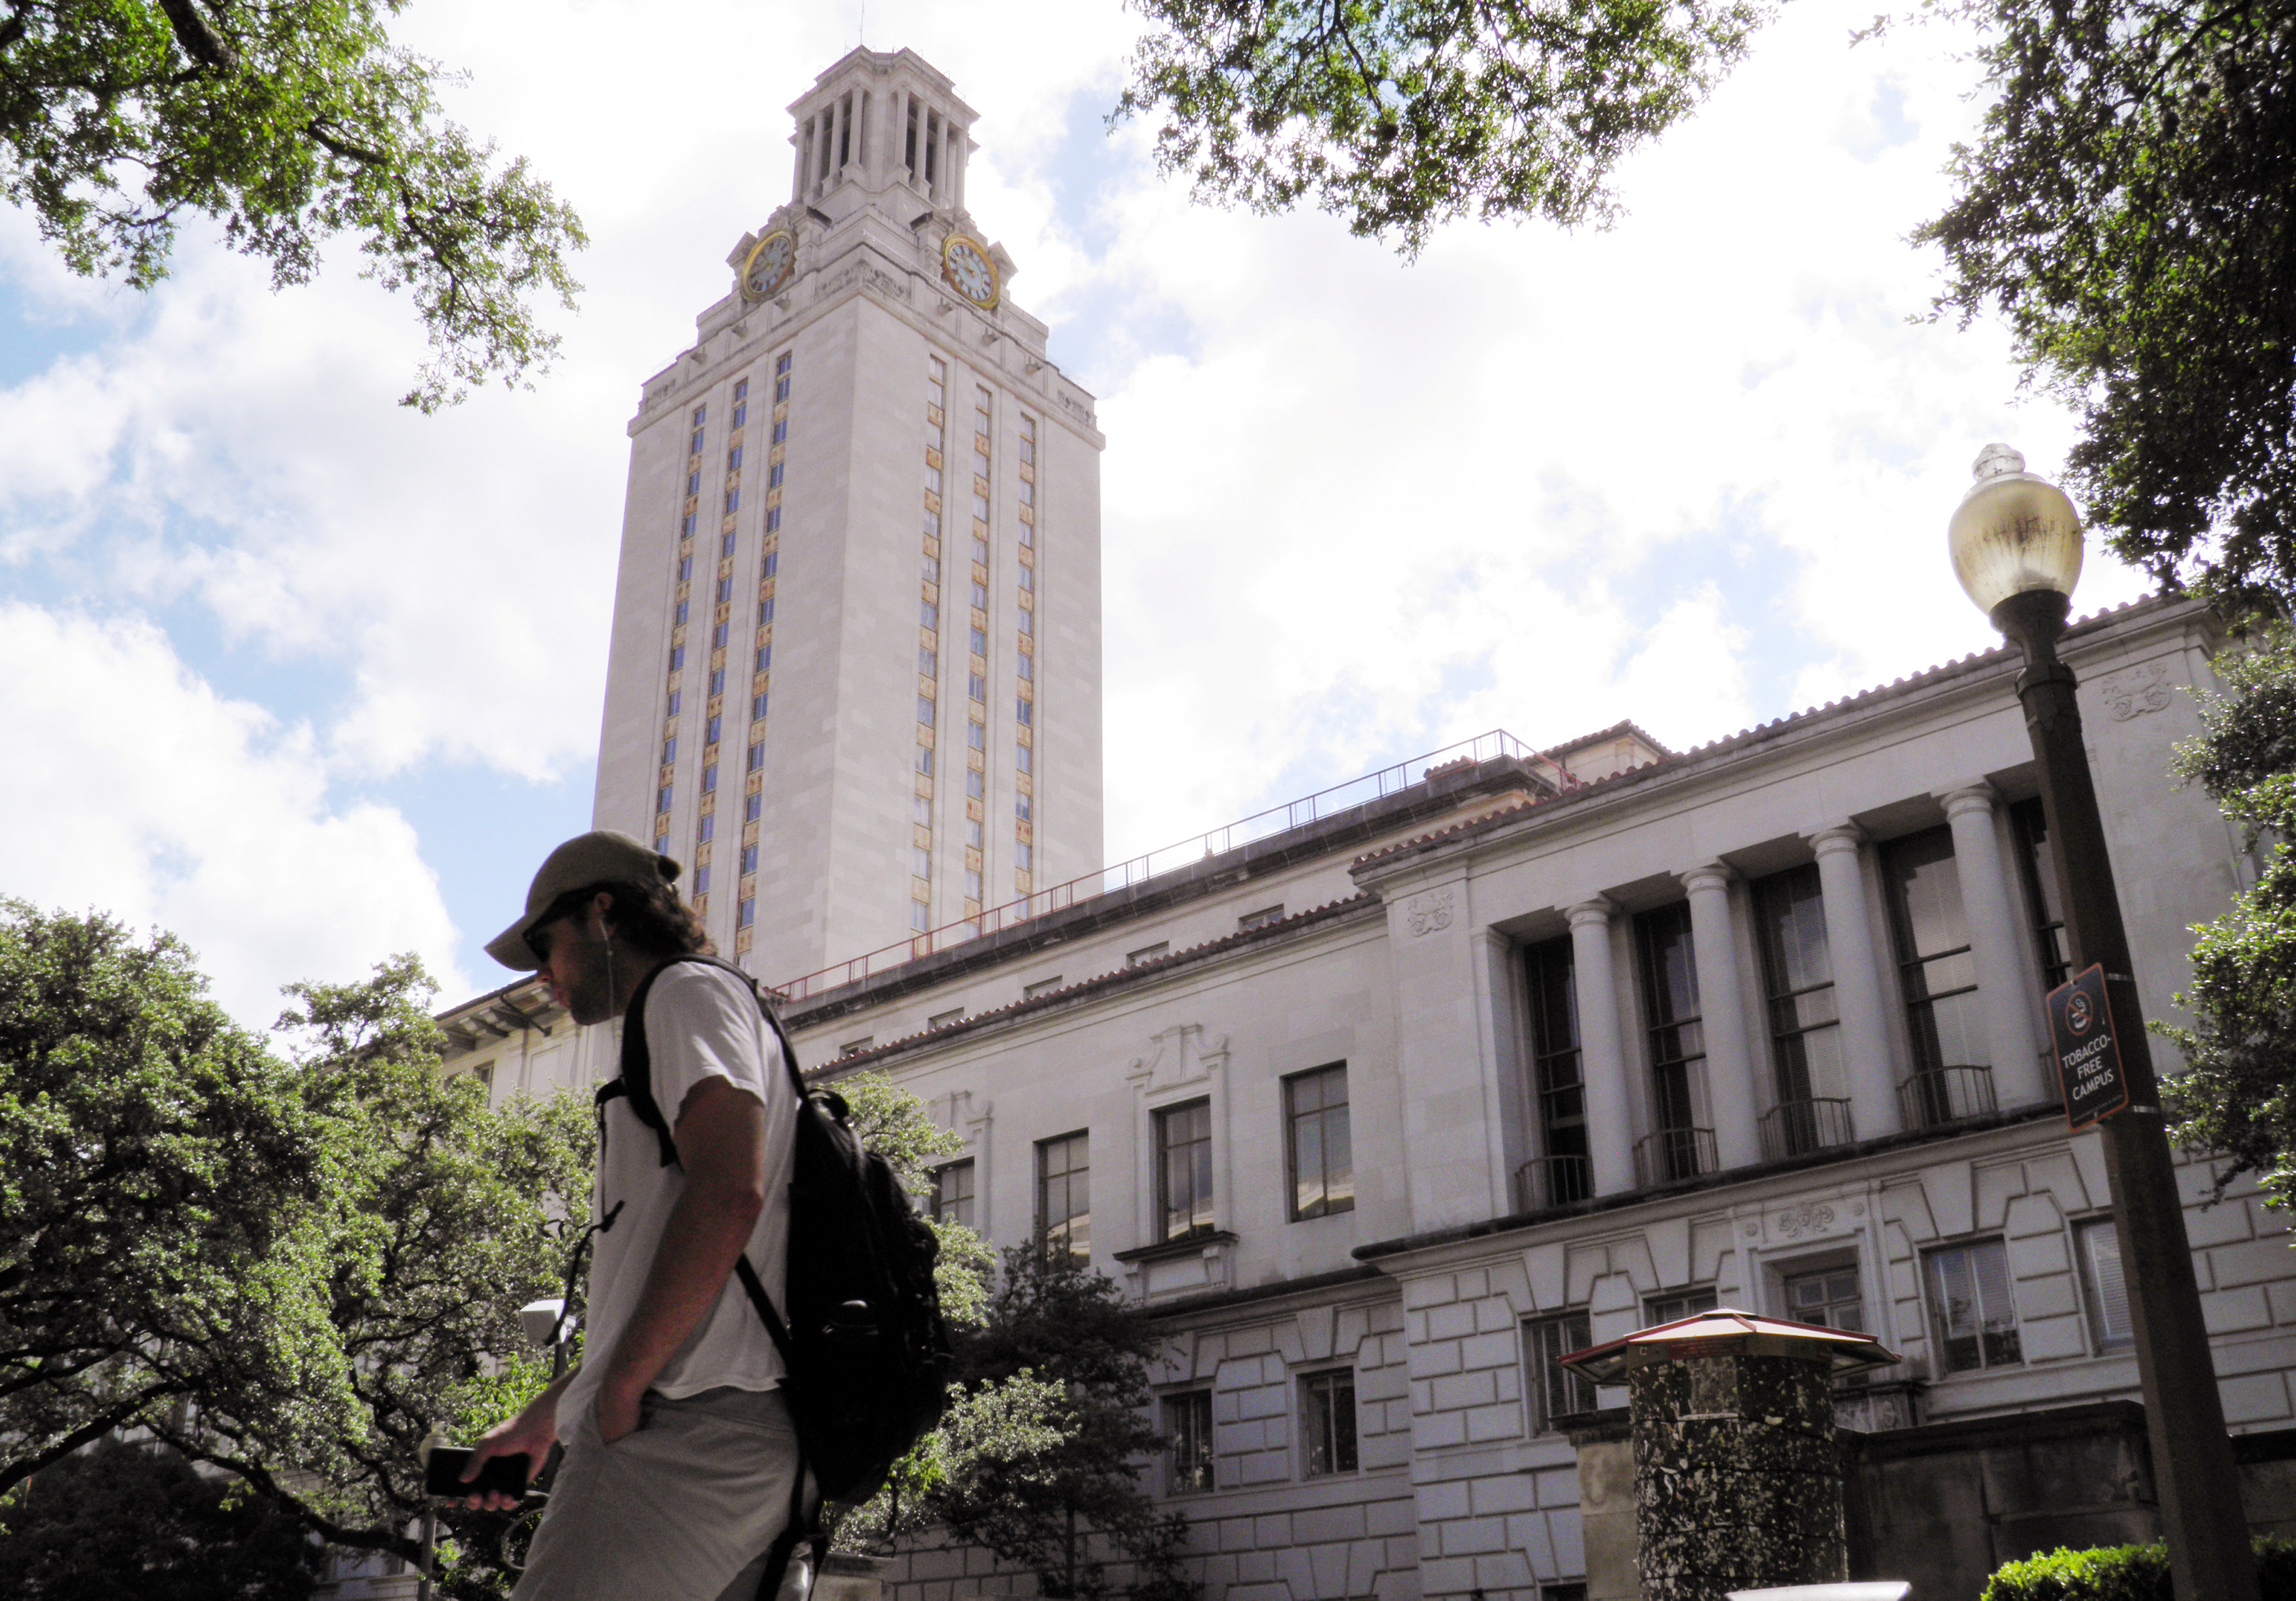 FILE PHOTO: A student walks at the University of Texas campus in Austin, Texas, U.S., on June 23, 2016. REUTERS/Jon Herskovitz/File Photo